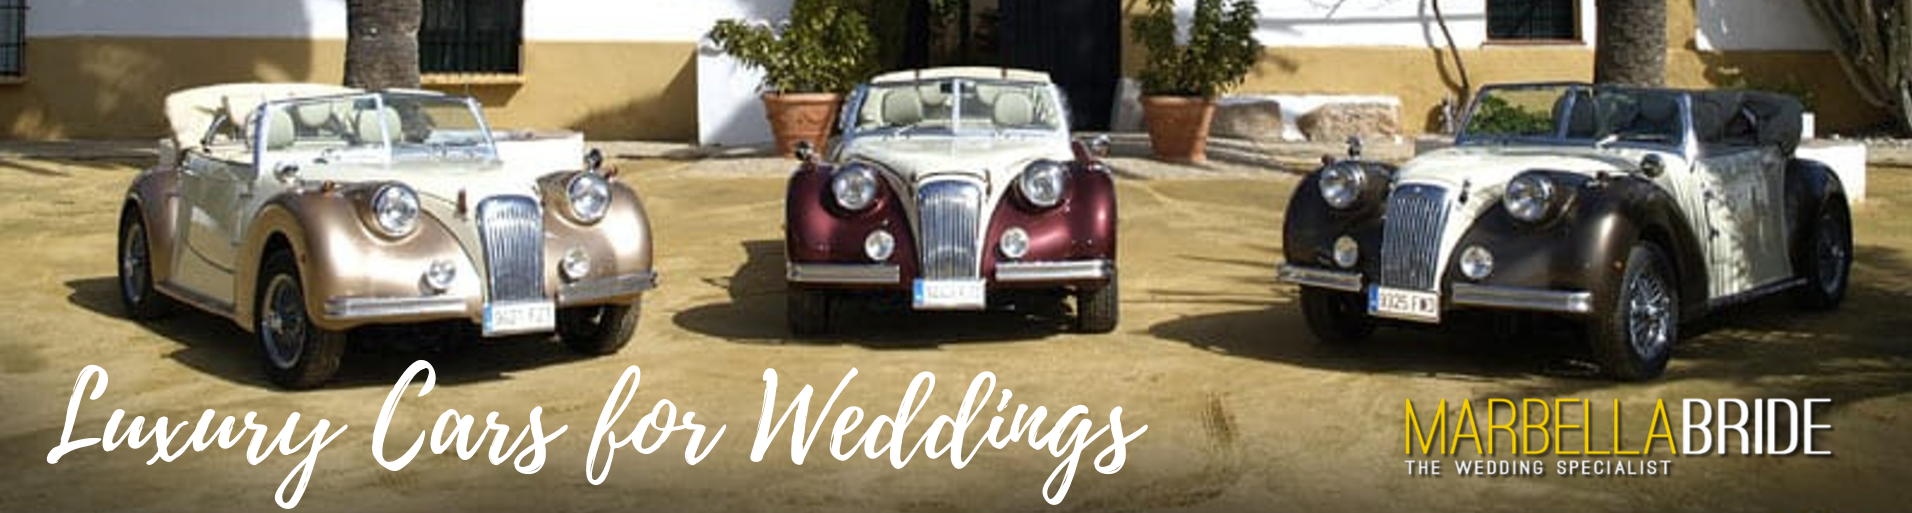 Luxury wedding cars Marbella